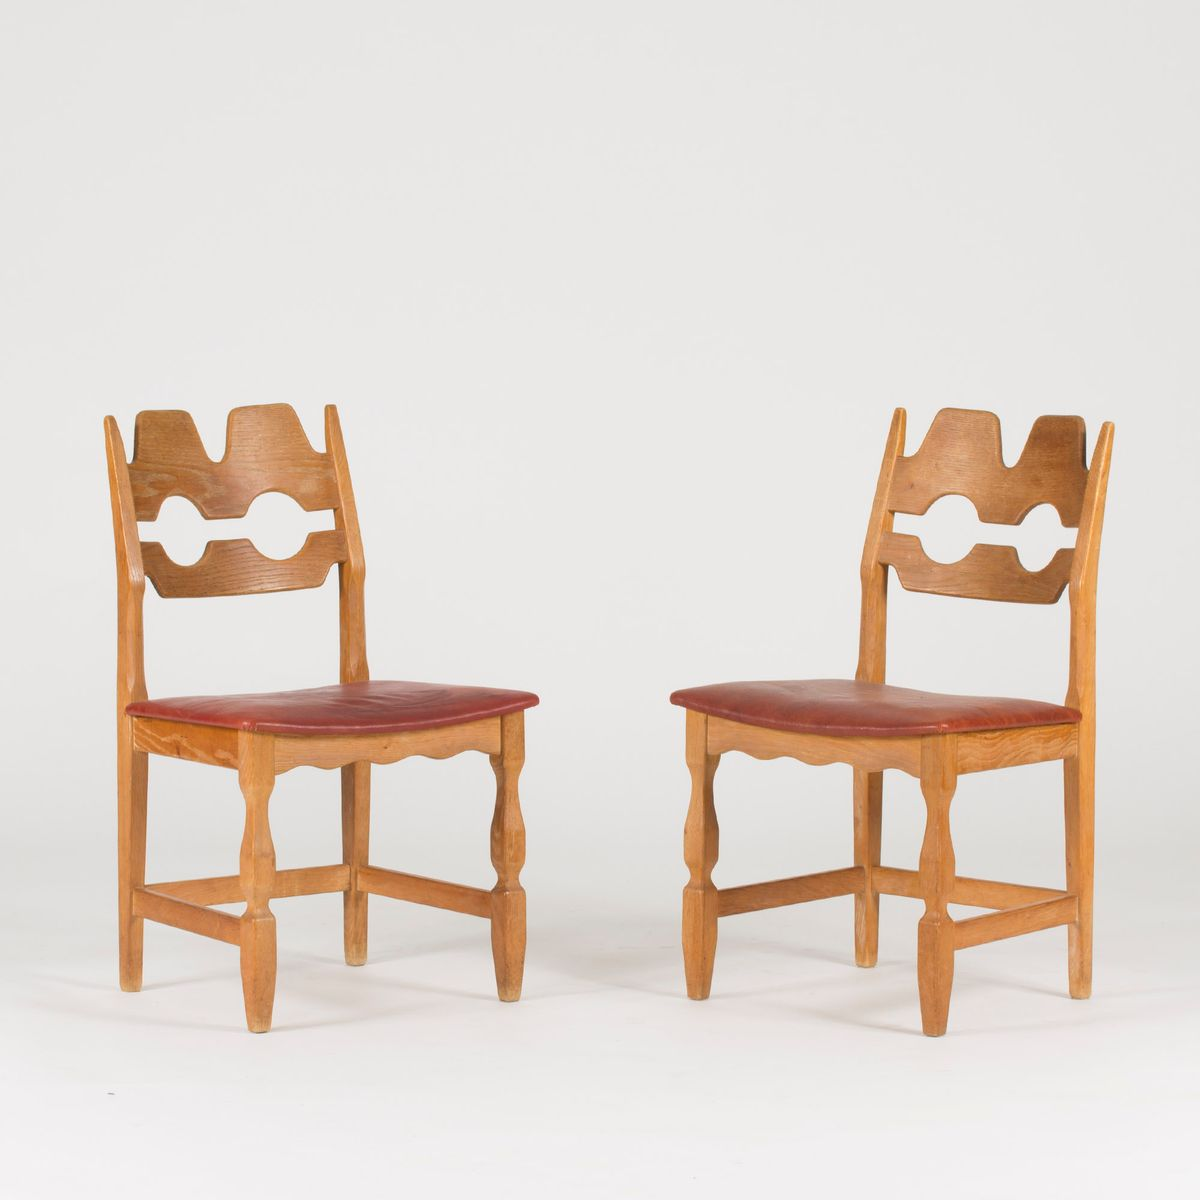 Oak dining chairs by henning kj rnulf 1960s set of 6 for for Set of 6 dining chairs